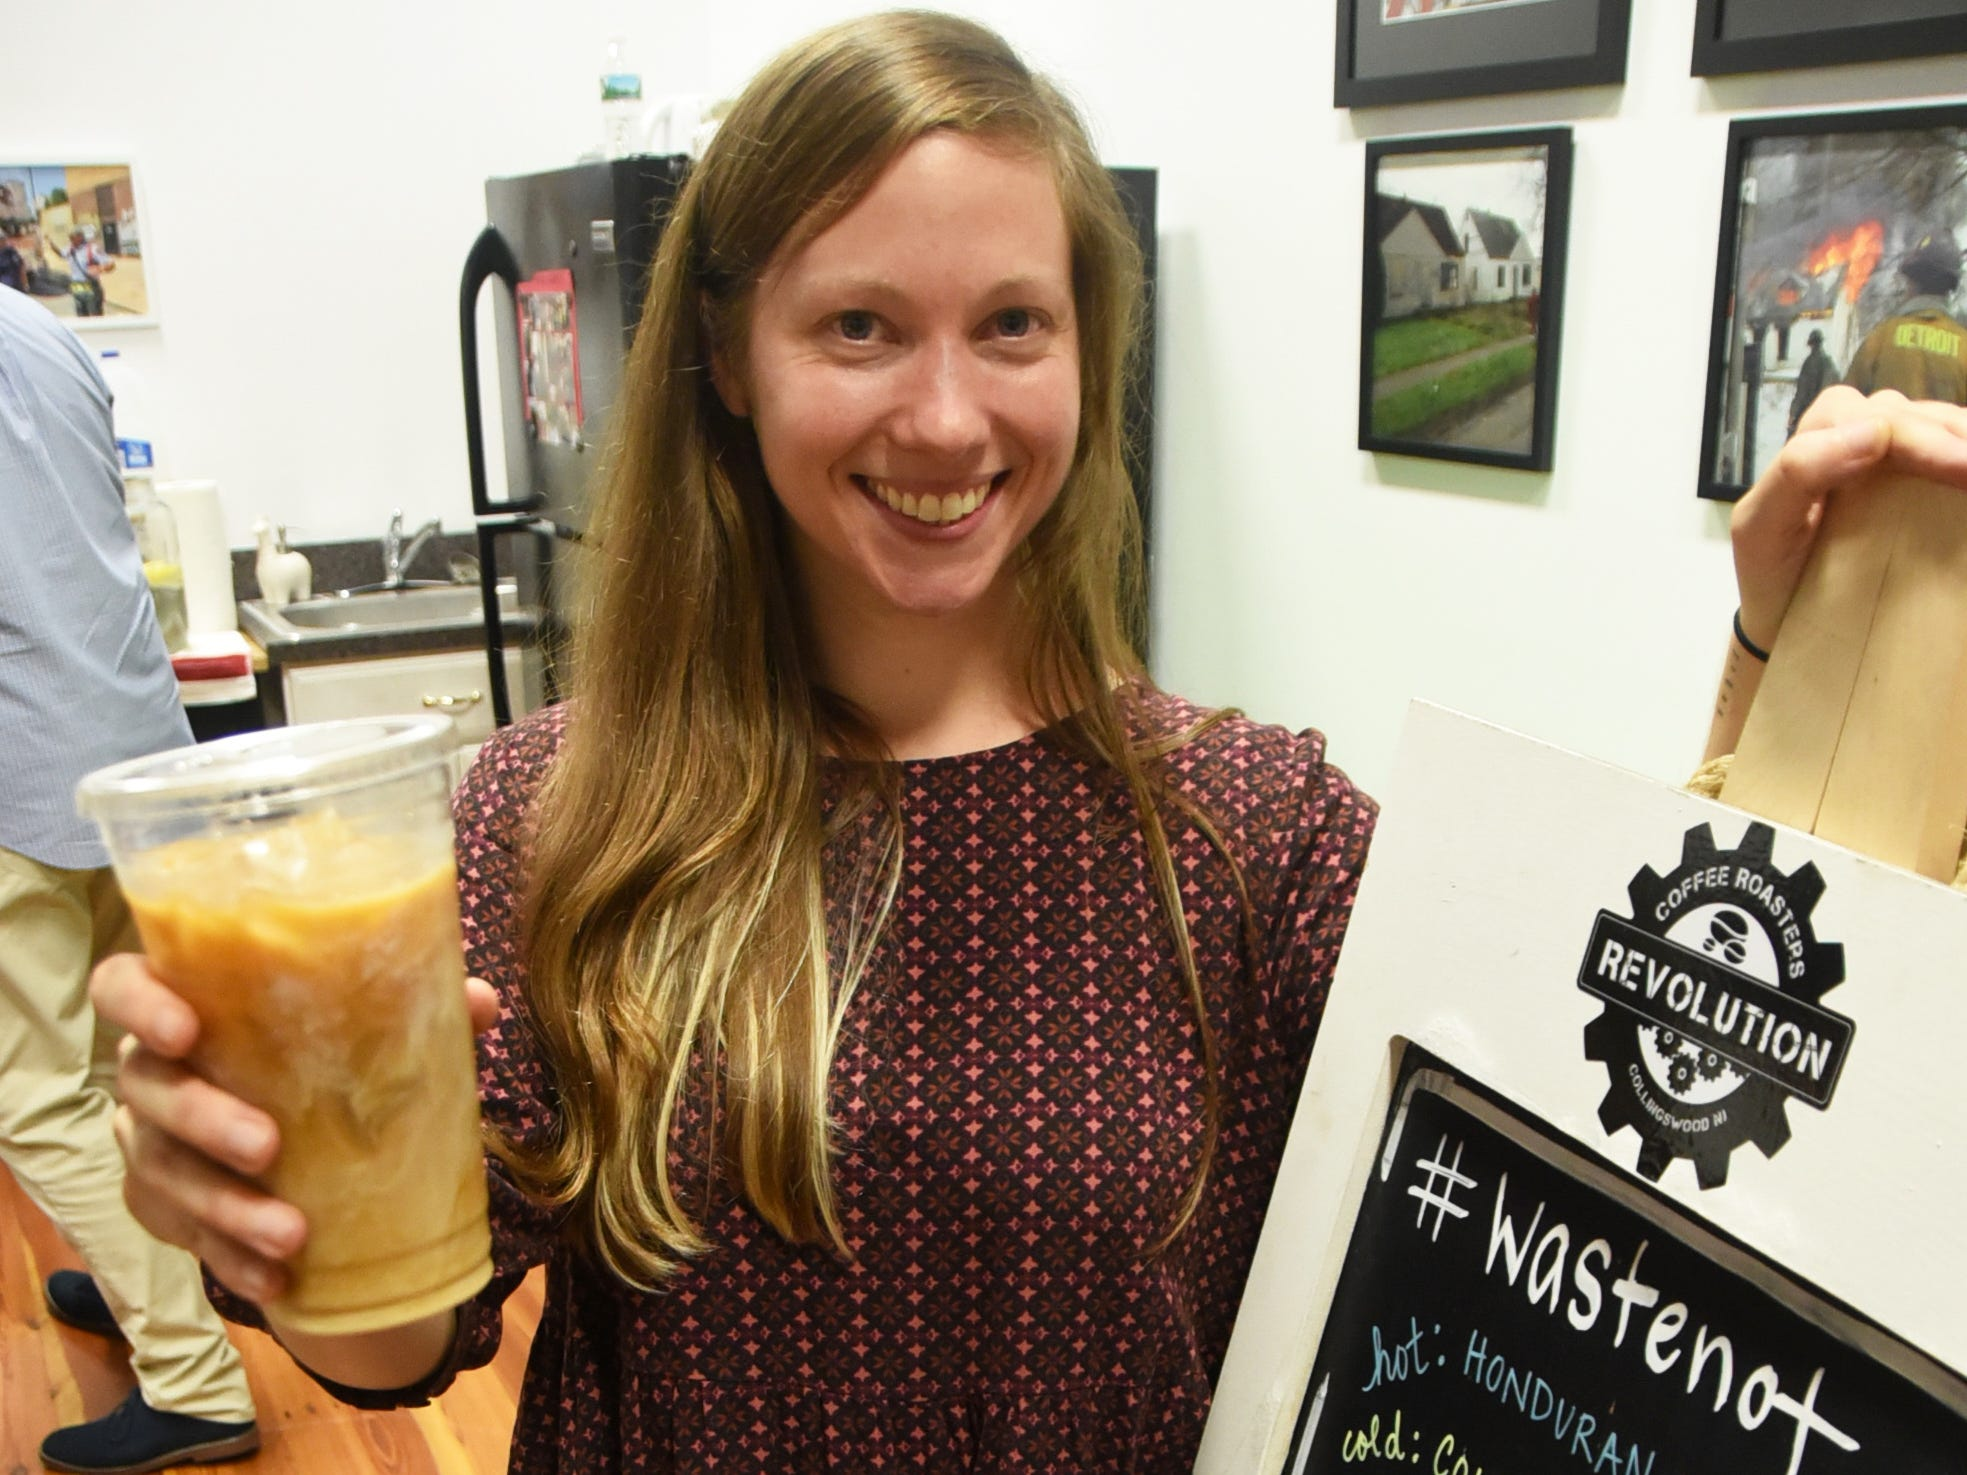 Lindsey Ferguson of Revolution Coffee displays a coffee during the #WasteNot for CFET event at the FireWorks Gallery in South Camden on Saturday, September 29, 2018.  The Courier-Post partnered with the Farm & Fisherman Tavern in Cherry Hill and other community organizations to hold the event that offered a special tasting, farm tour and community conversation about reducing food waste.